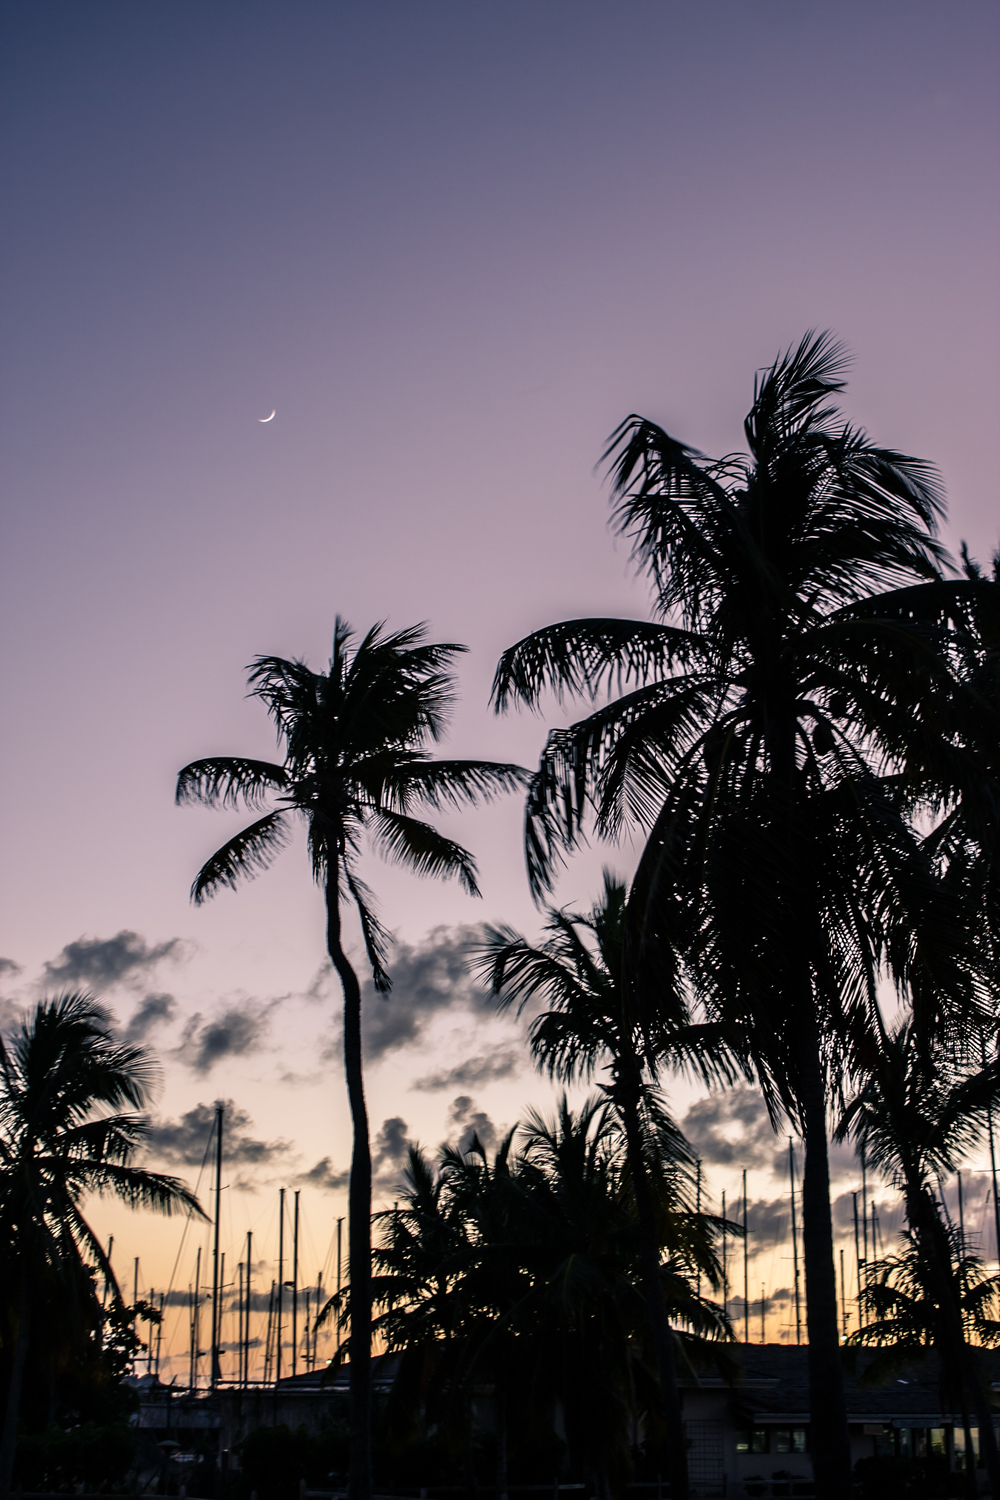 A fingernail moon and palm tree silhouetted against a bright sunset over a harbor of anchored sailboats.